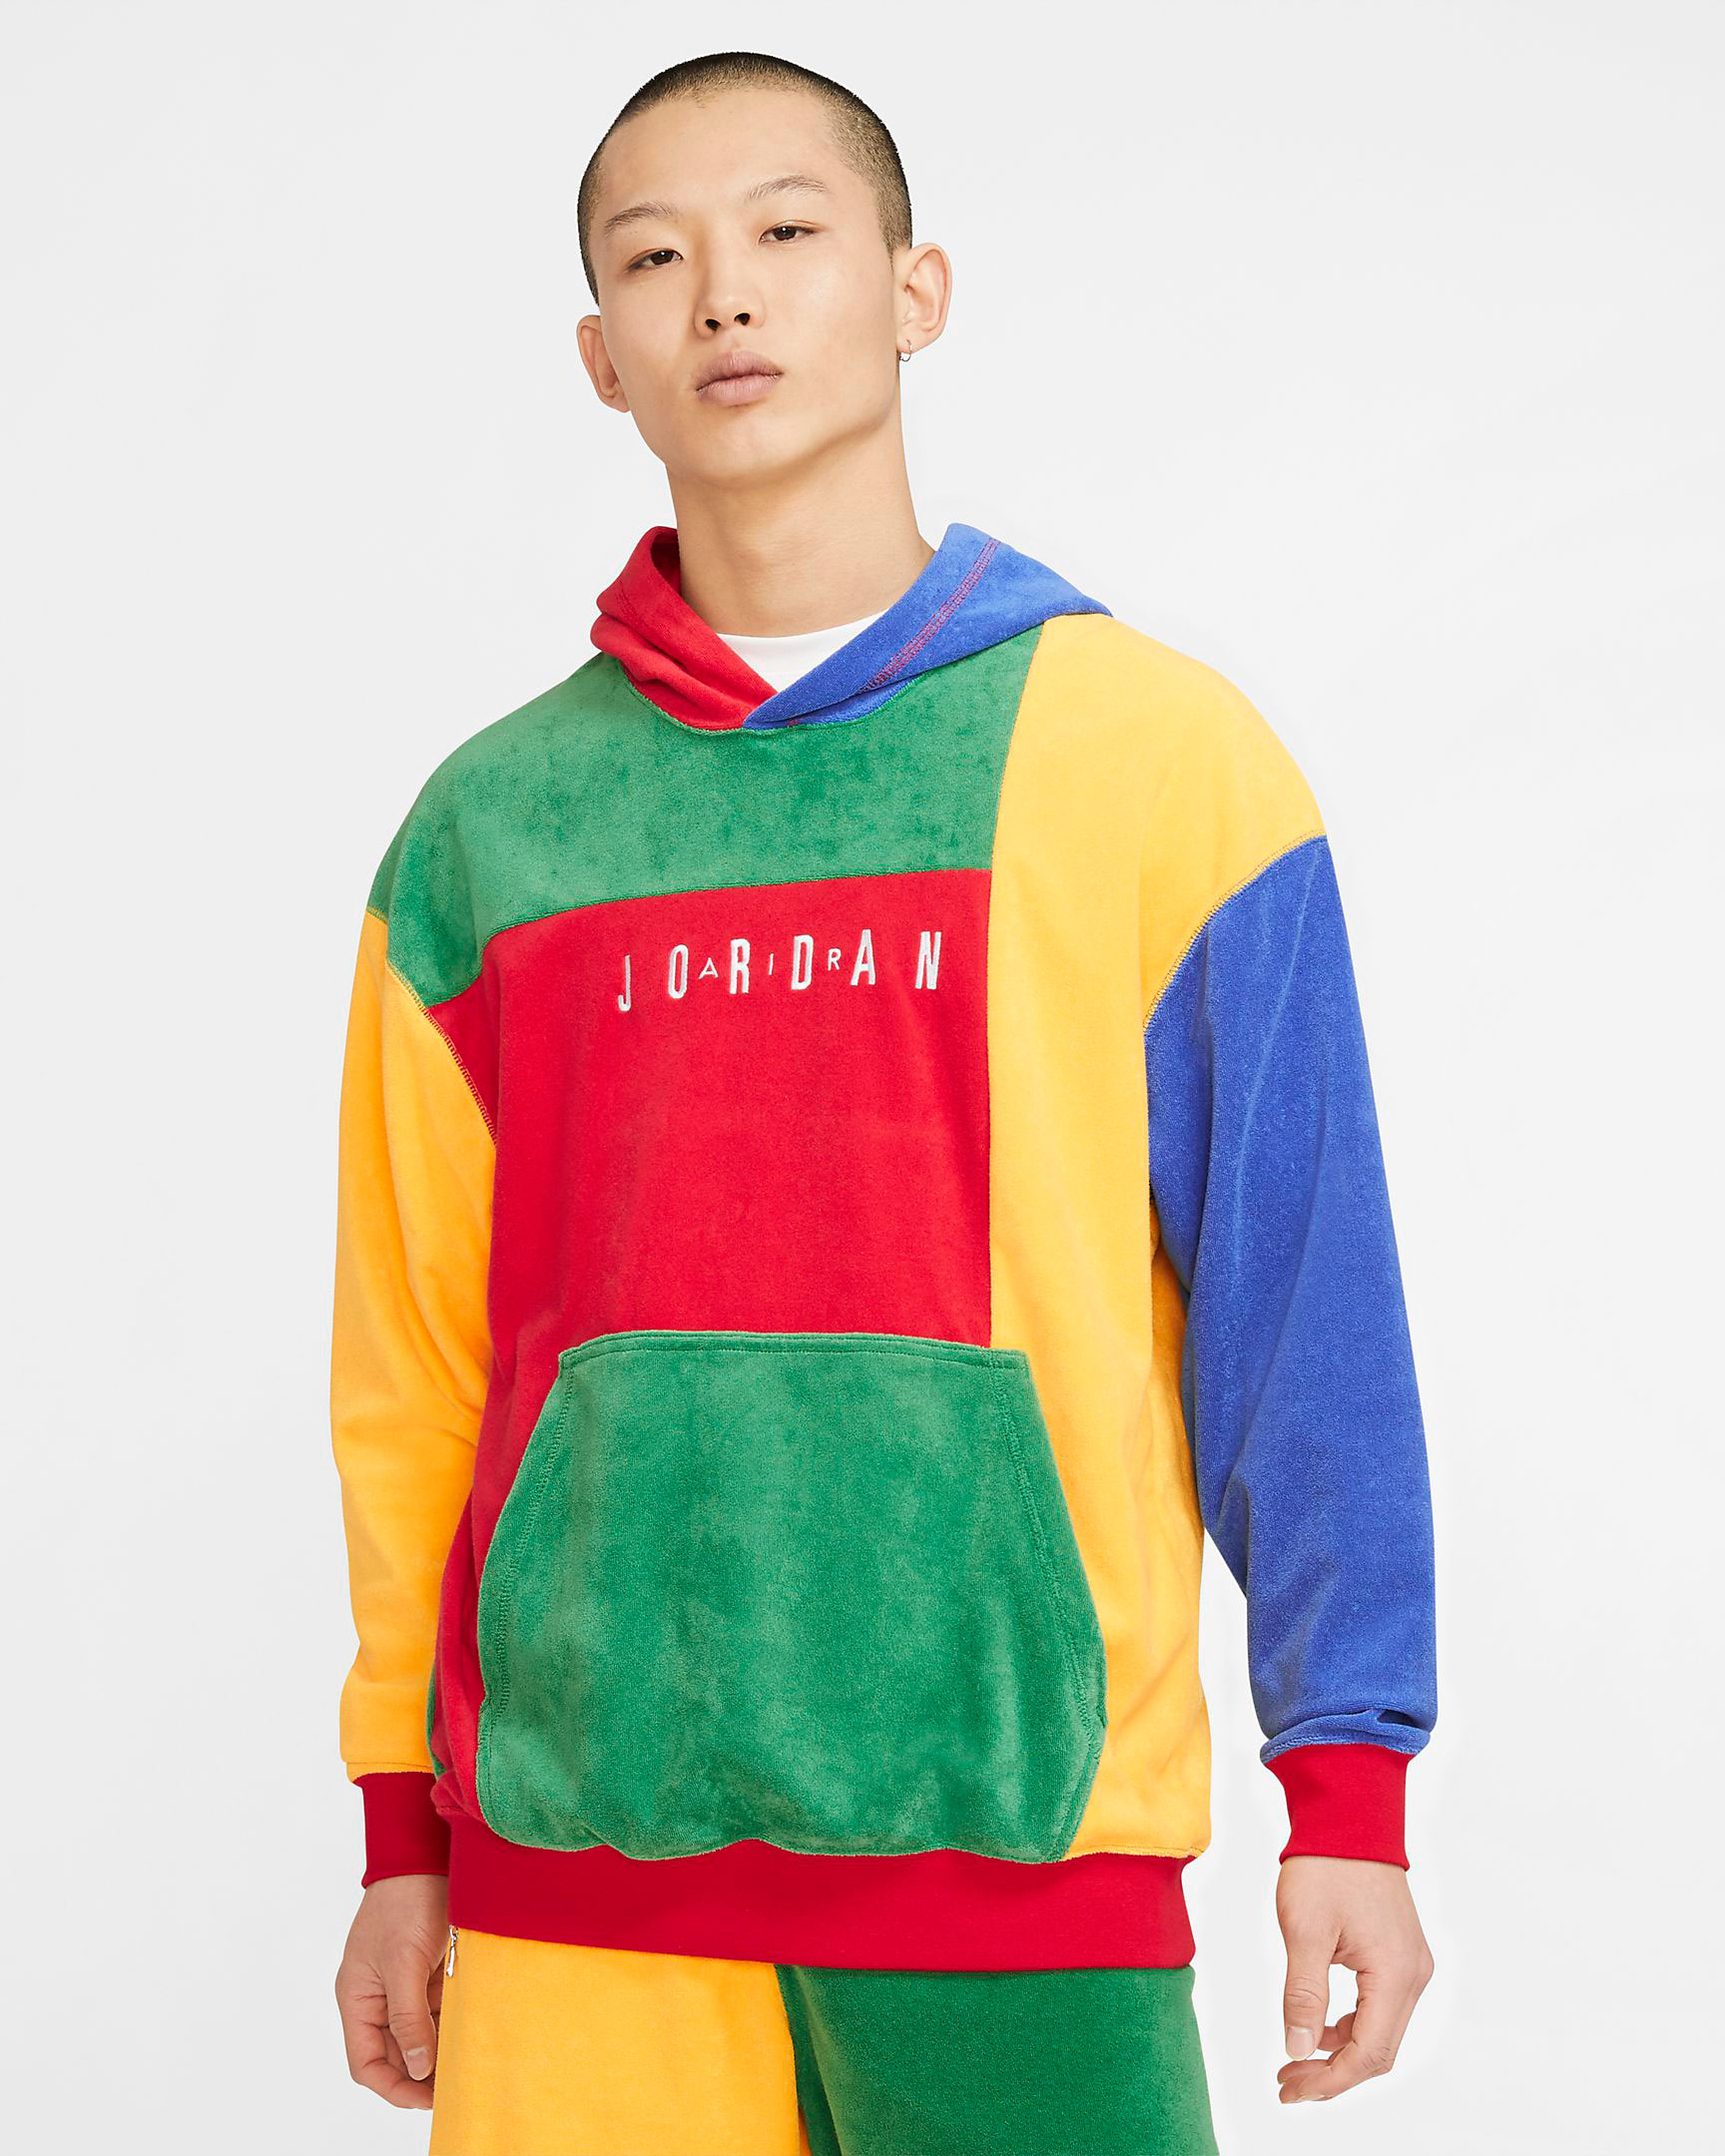 jordan-sport-dna-multi-color-hoodie